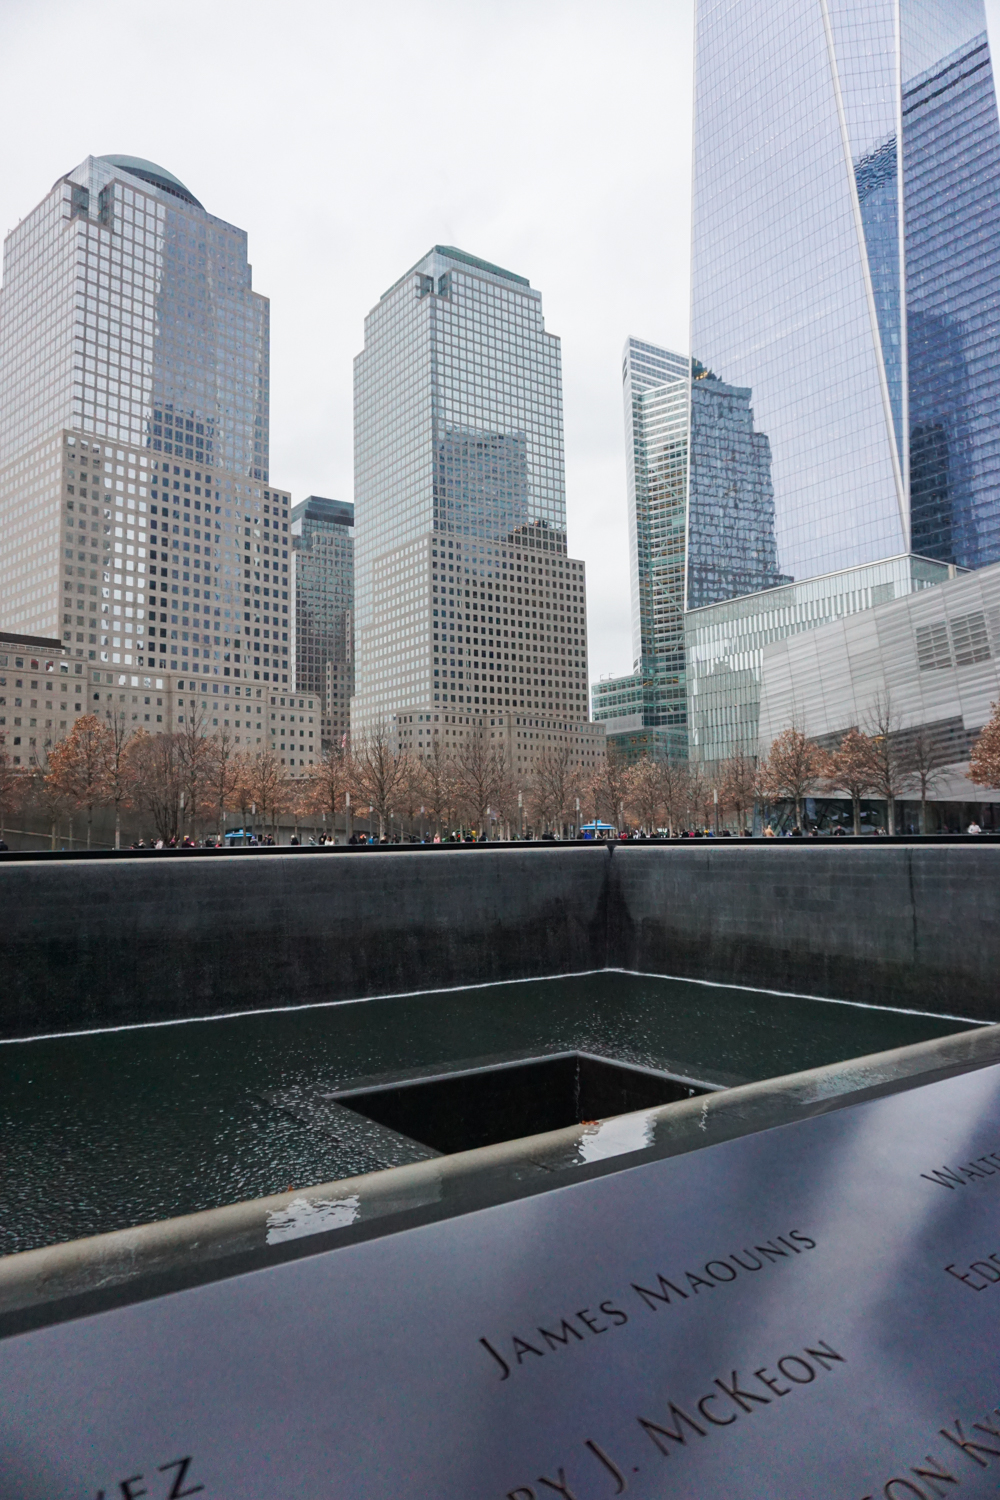 Oliver's Travels: NYC - What to do in NYC, What to see in NYC, Where to stay in NYC, What to eat in NYC! The World Trade Center Memorial in NYC